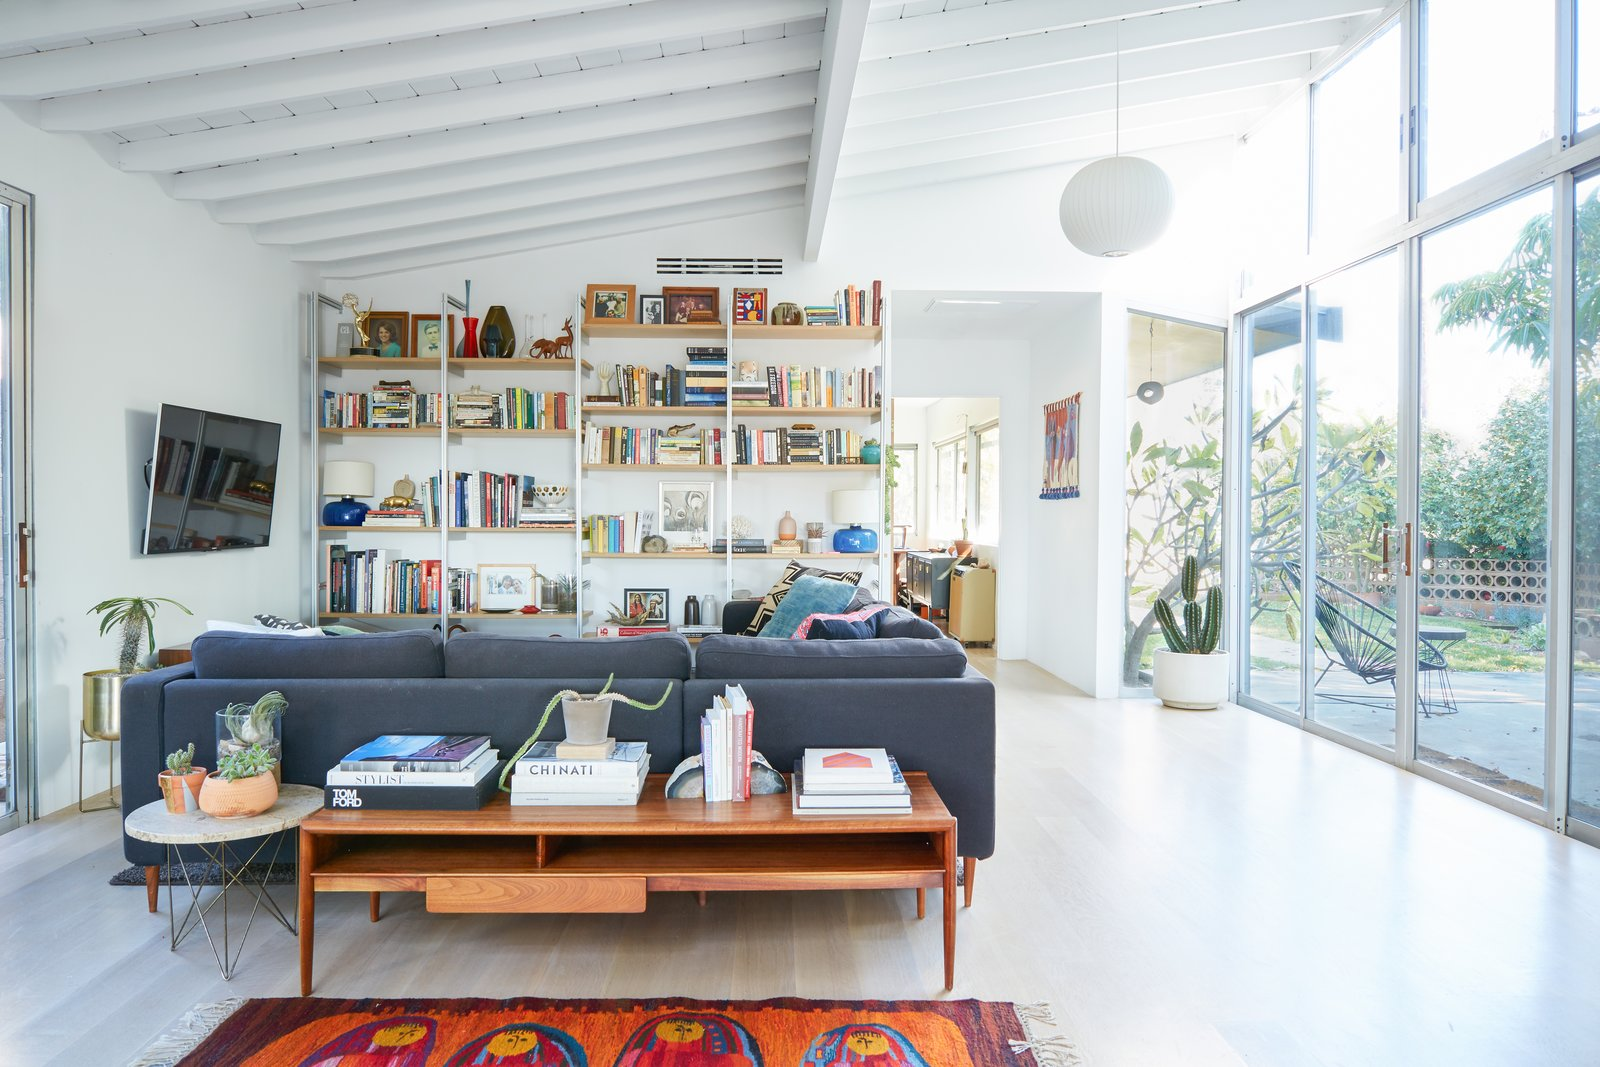 Midcentury Dream House Modern Home in Santa Monica, California on Dwell